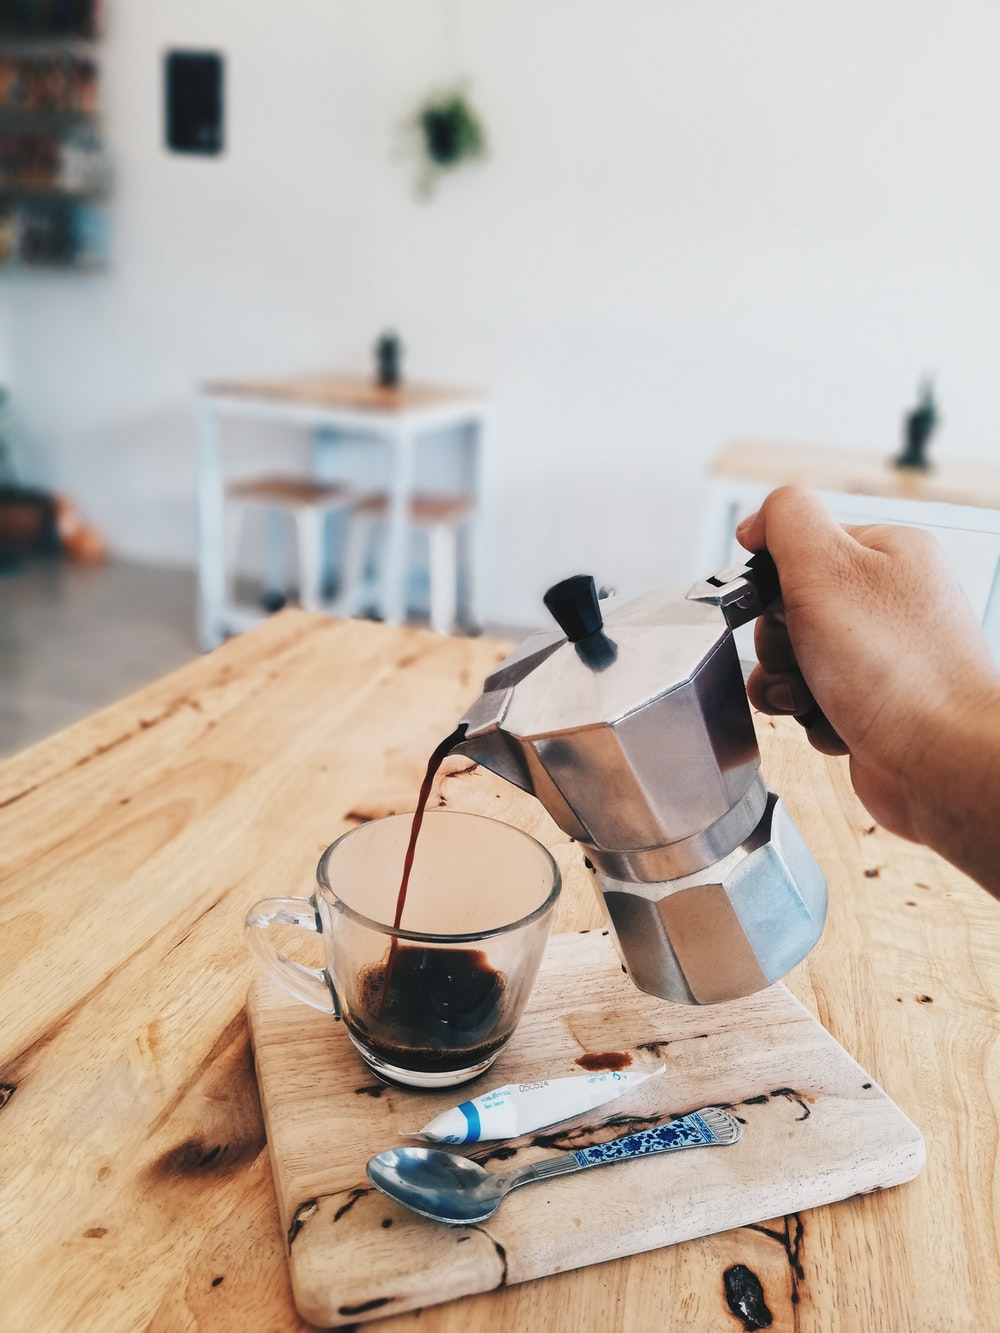 What Is a Moka Pot and How to Make Coffee